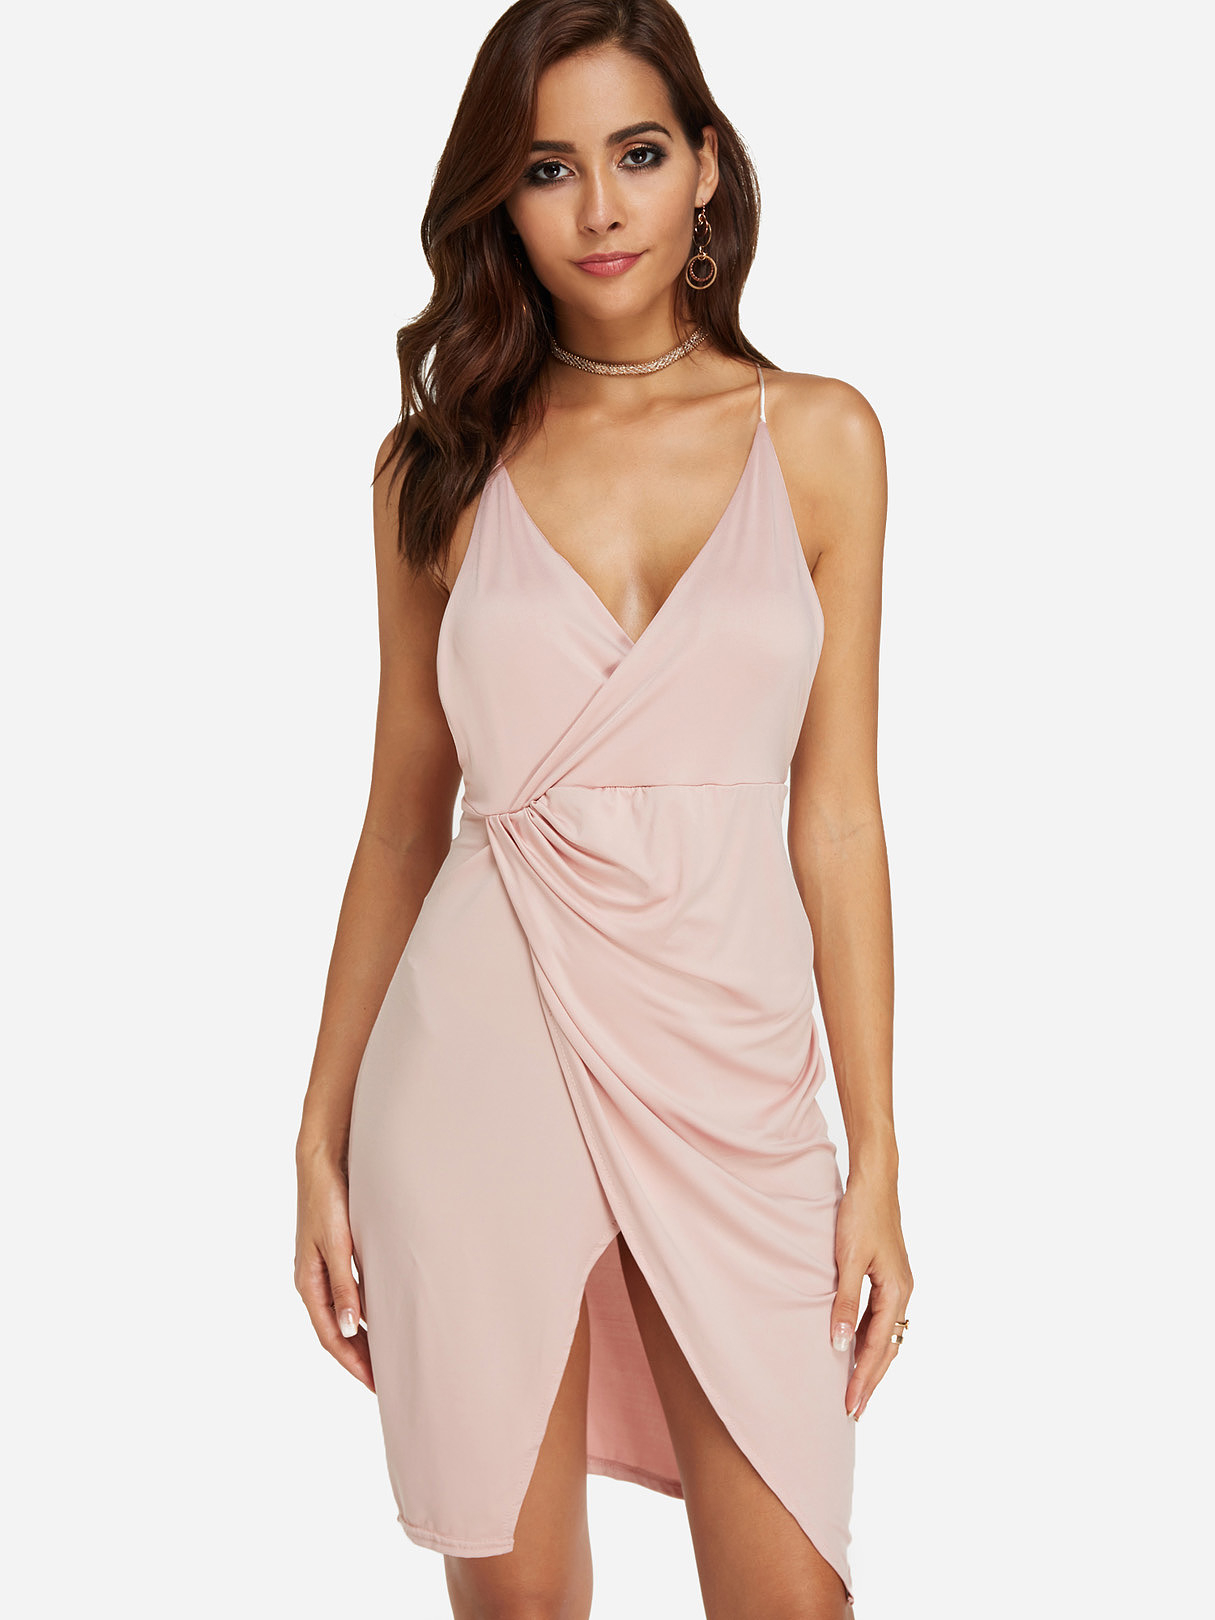 Bilde av Apricot Backless Design Plain Deep V Neck Sleeveless Wrap Dress